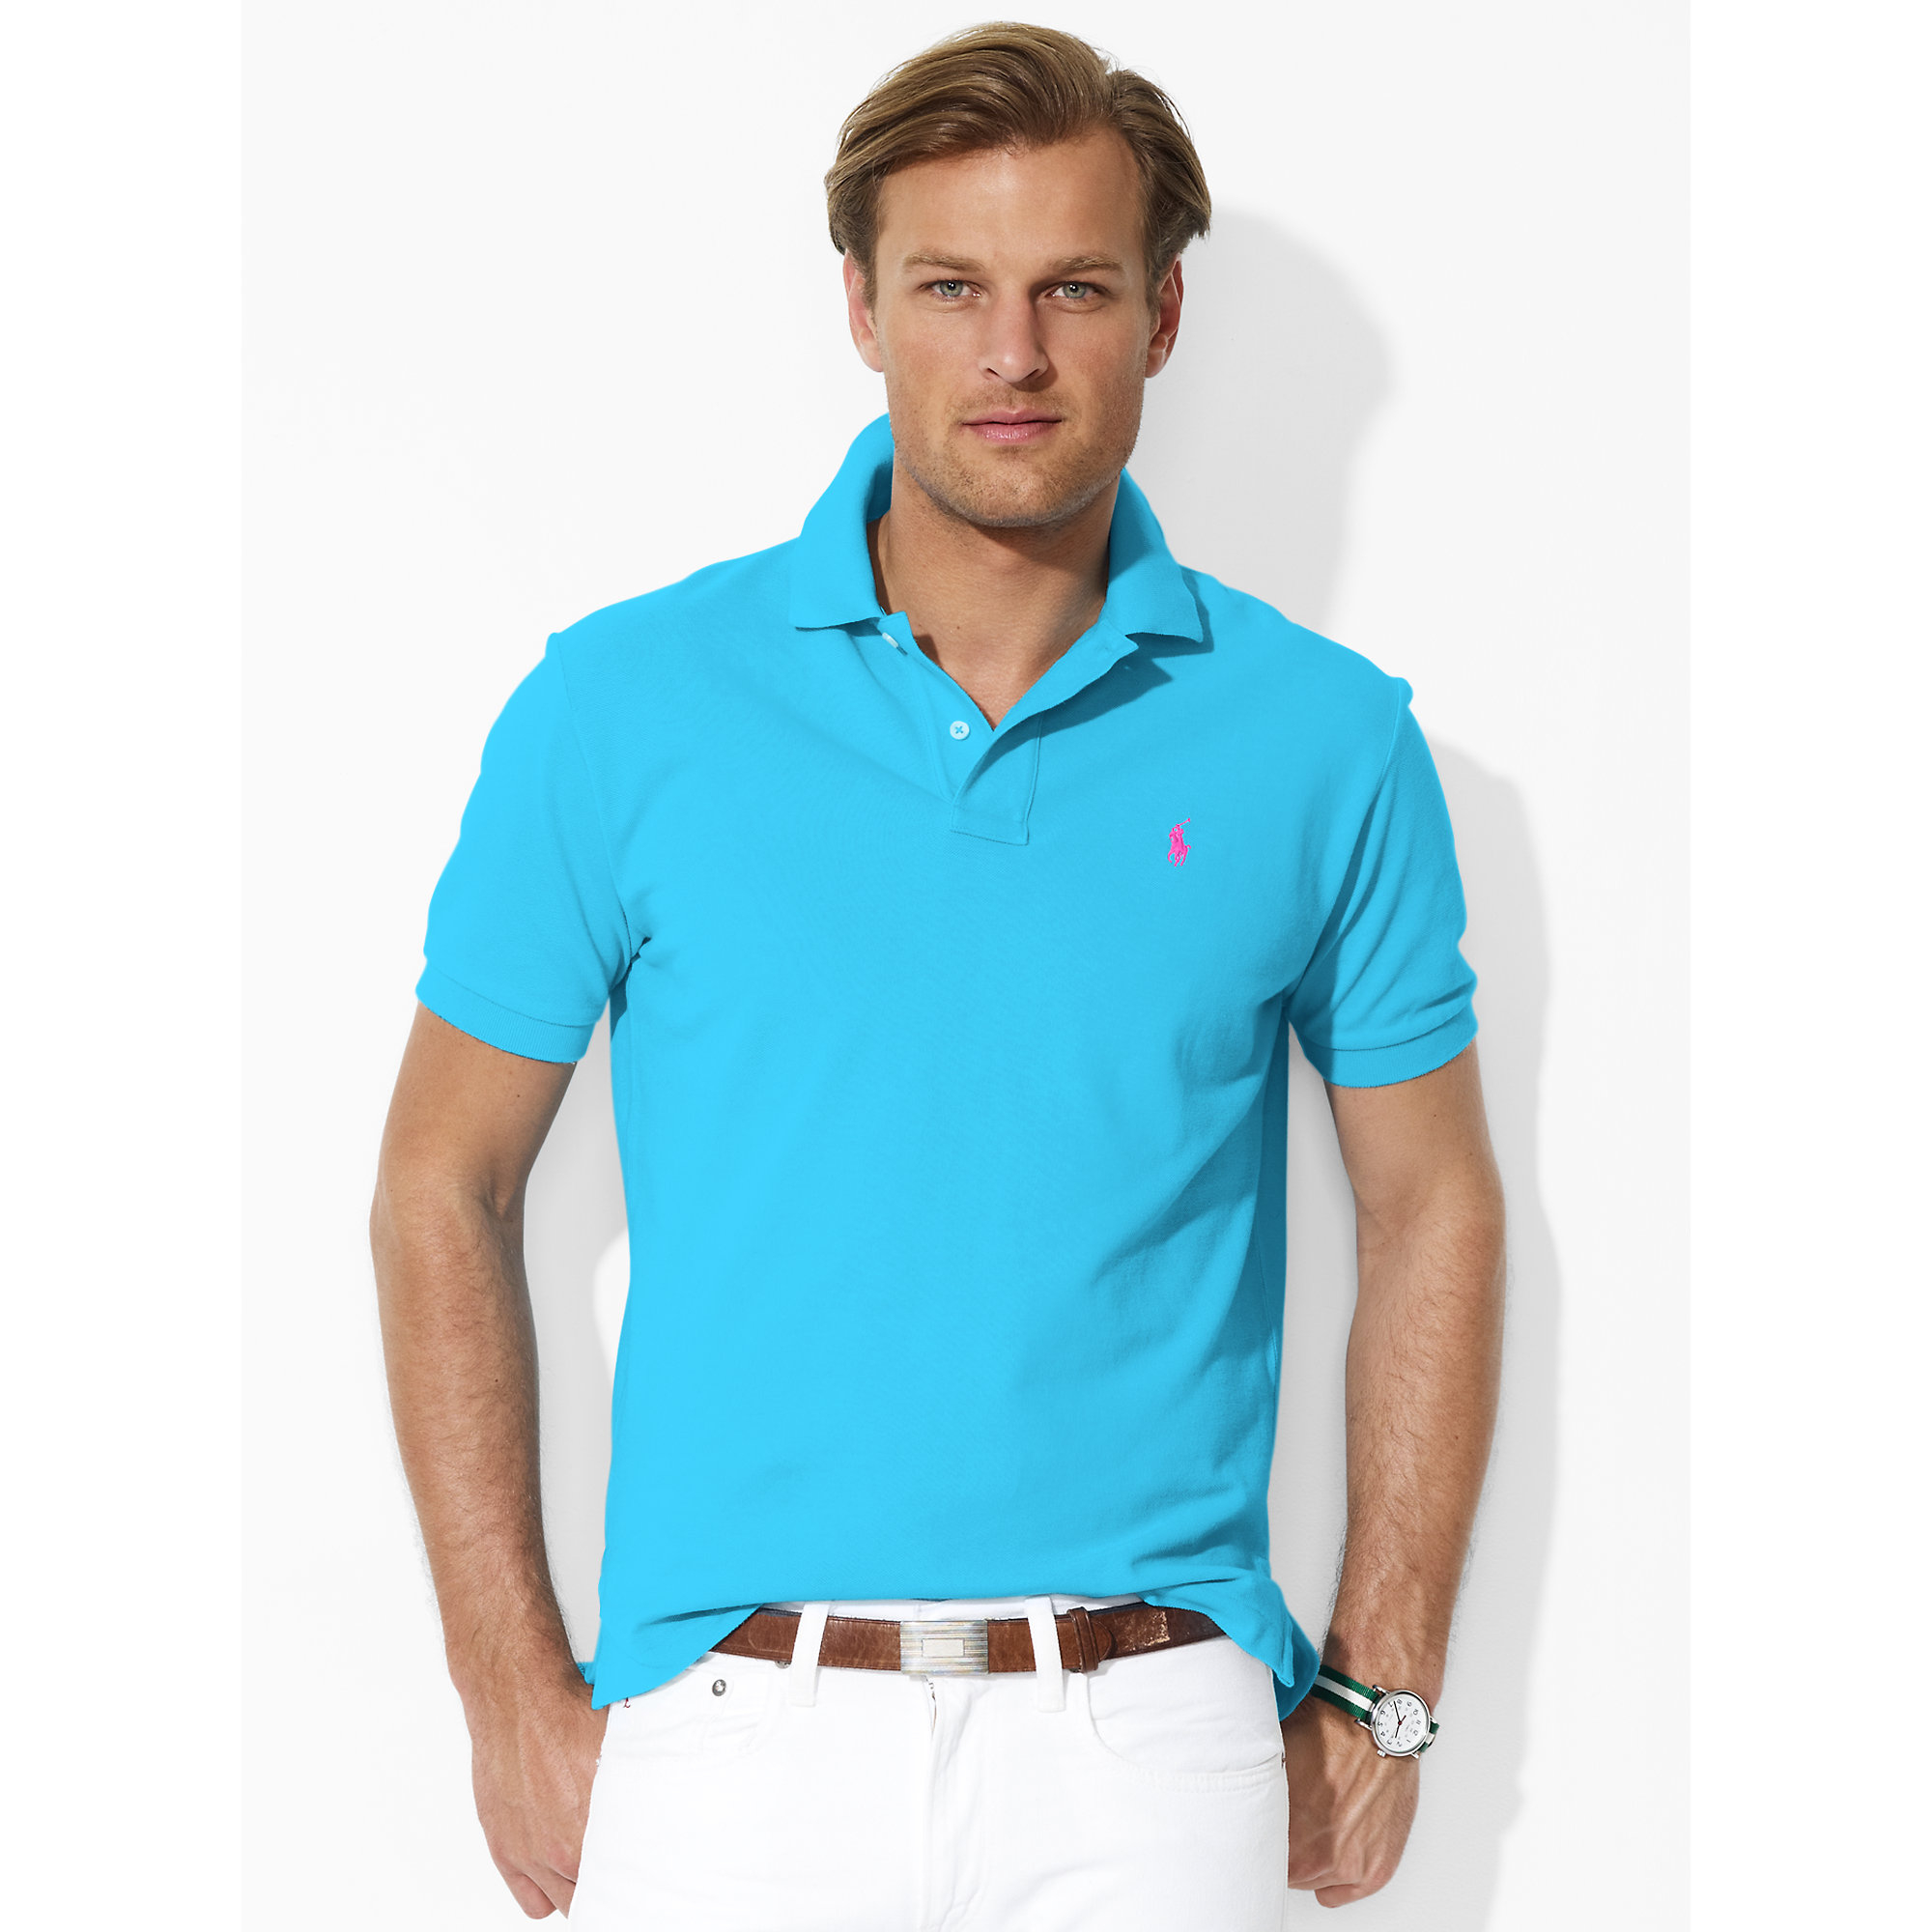 Lyst - Polo Ralph Lauren Classic-fit Mesh Polo in Blue for Men 1255f0c4080